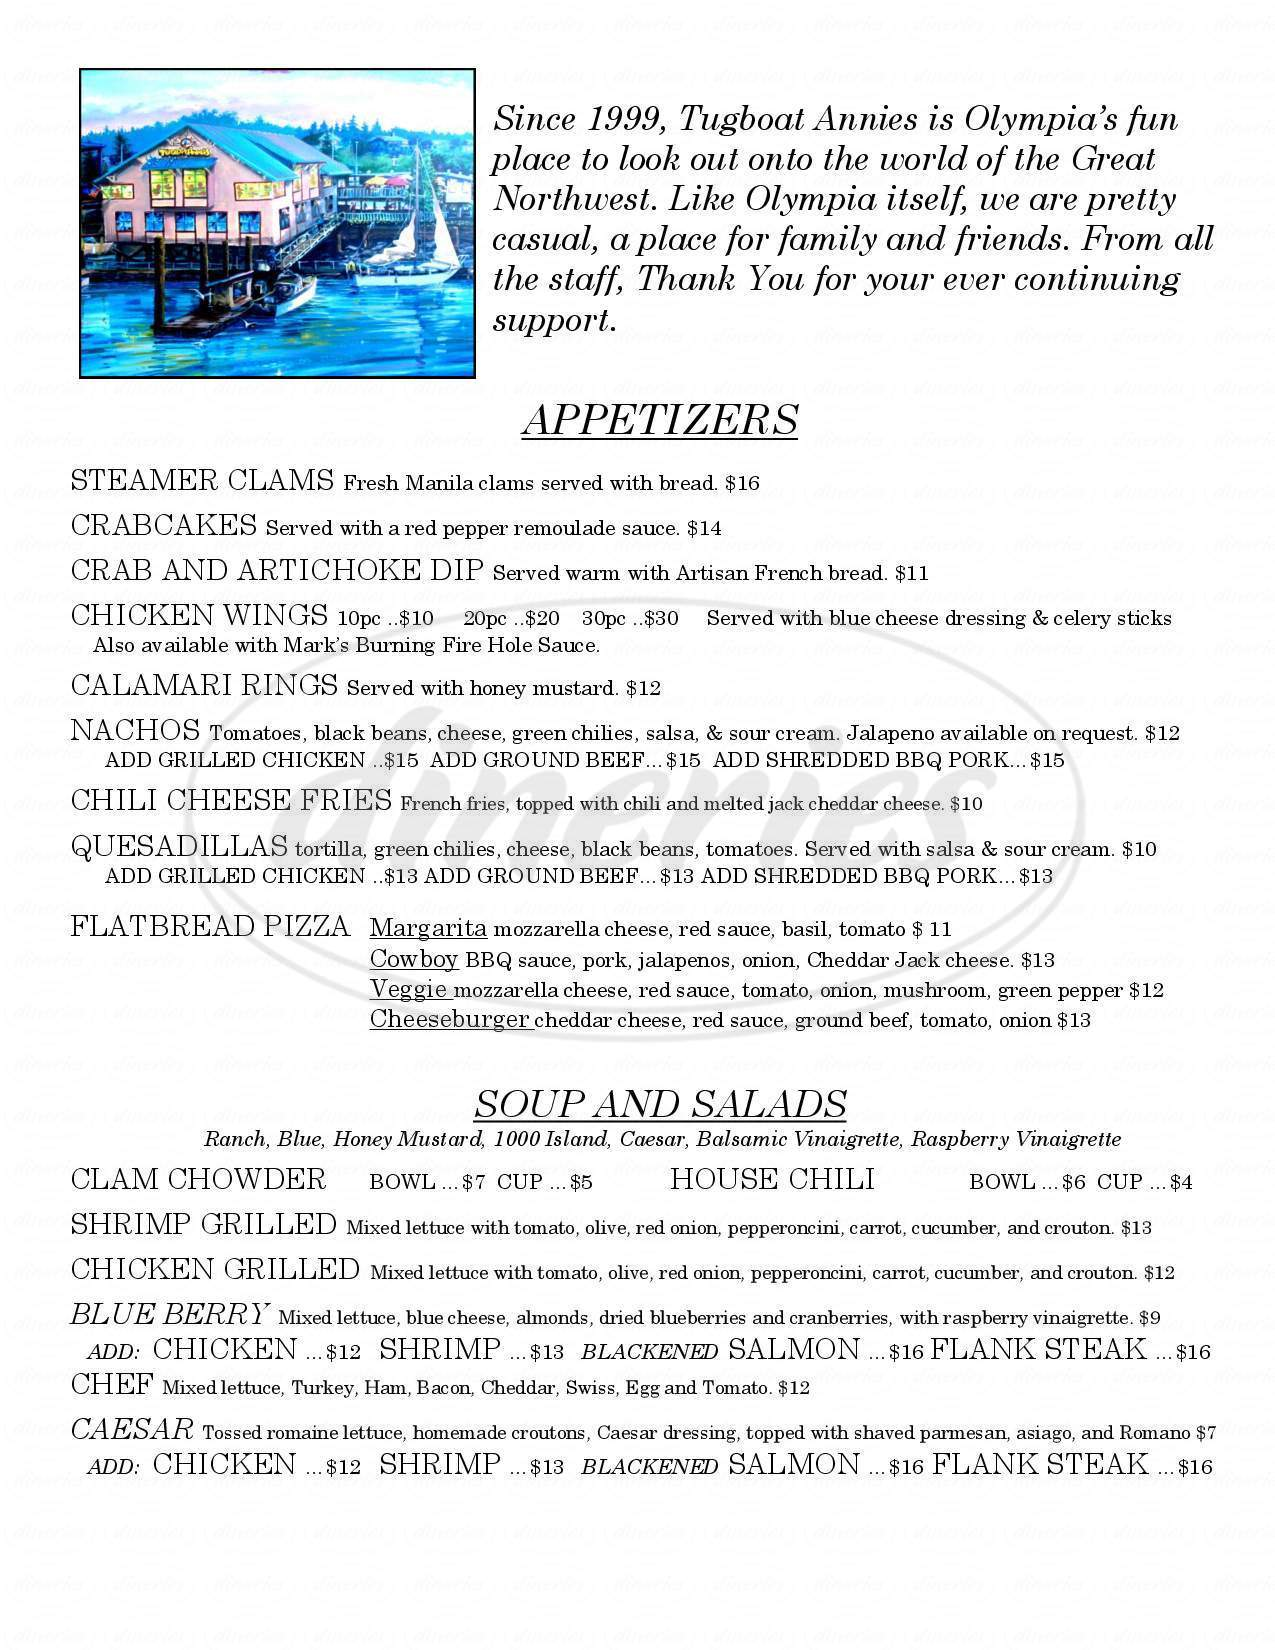 menu for Tugboat Annies